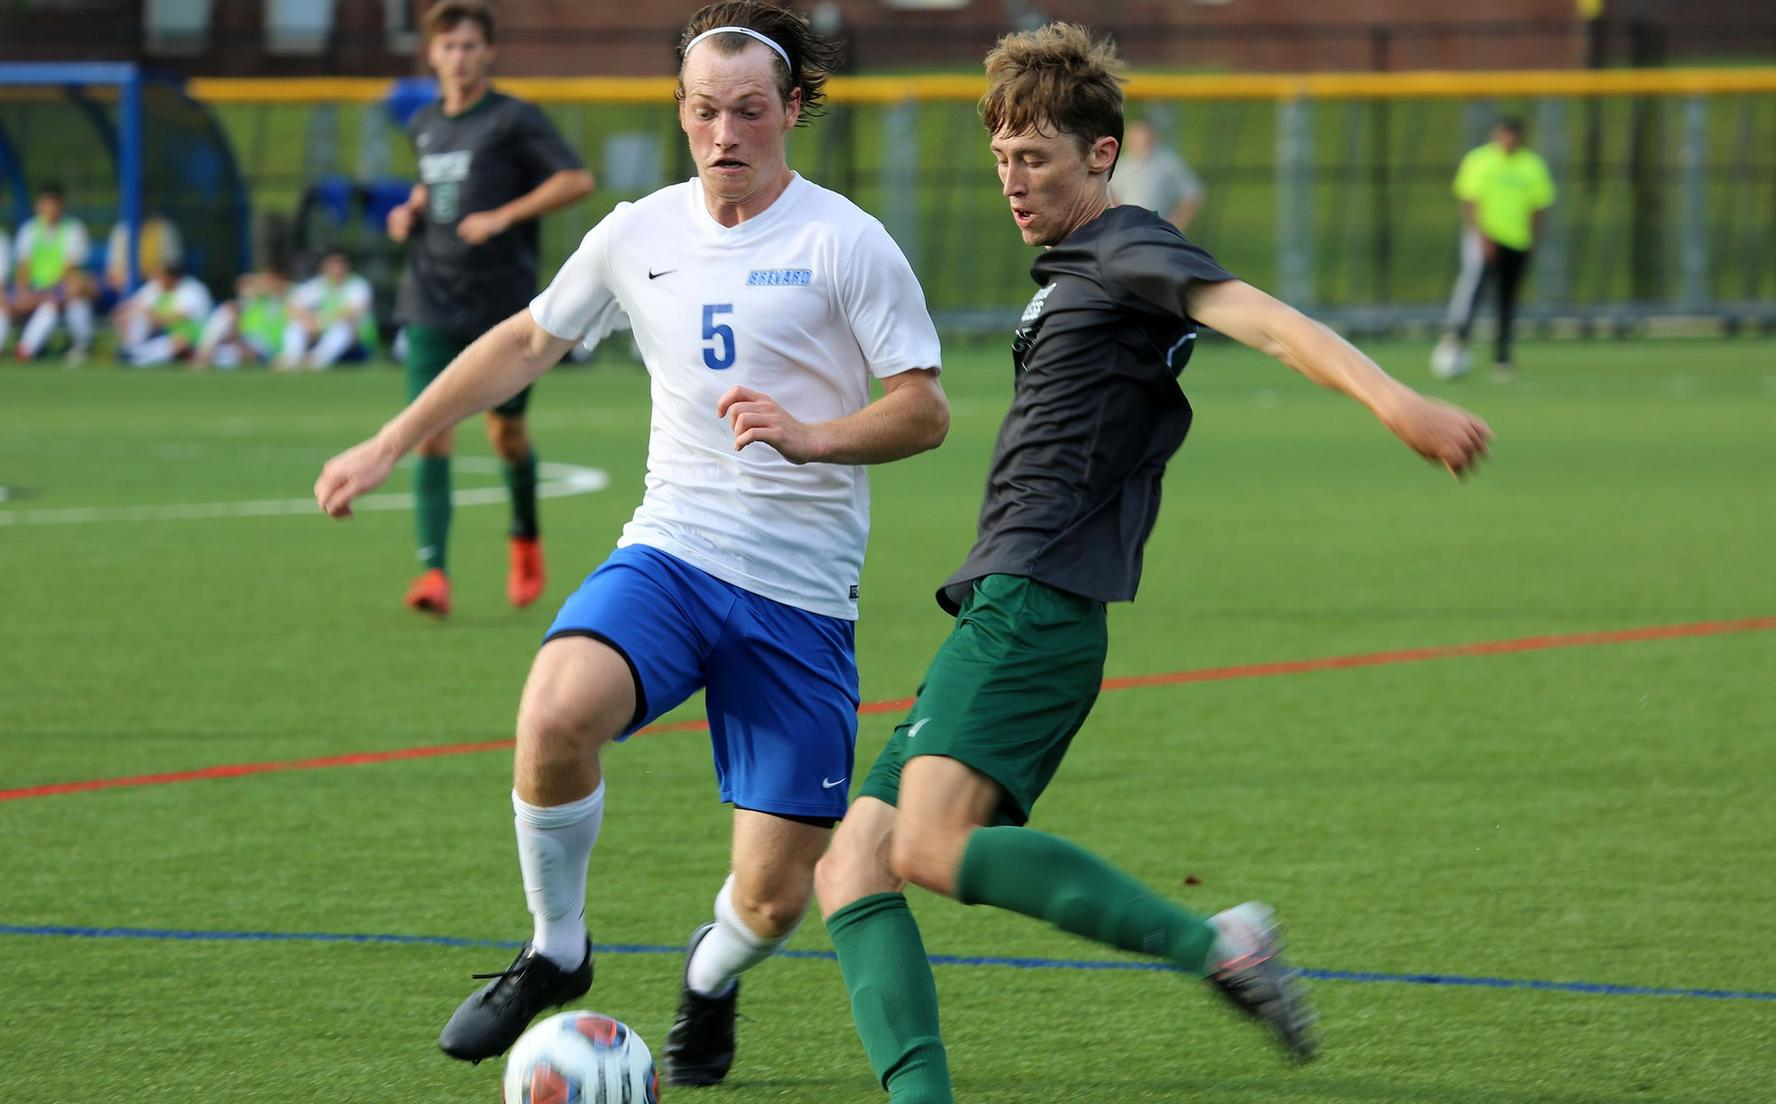 Brevard Drops 5-0 Defeat to Maryville